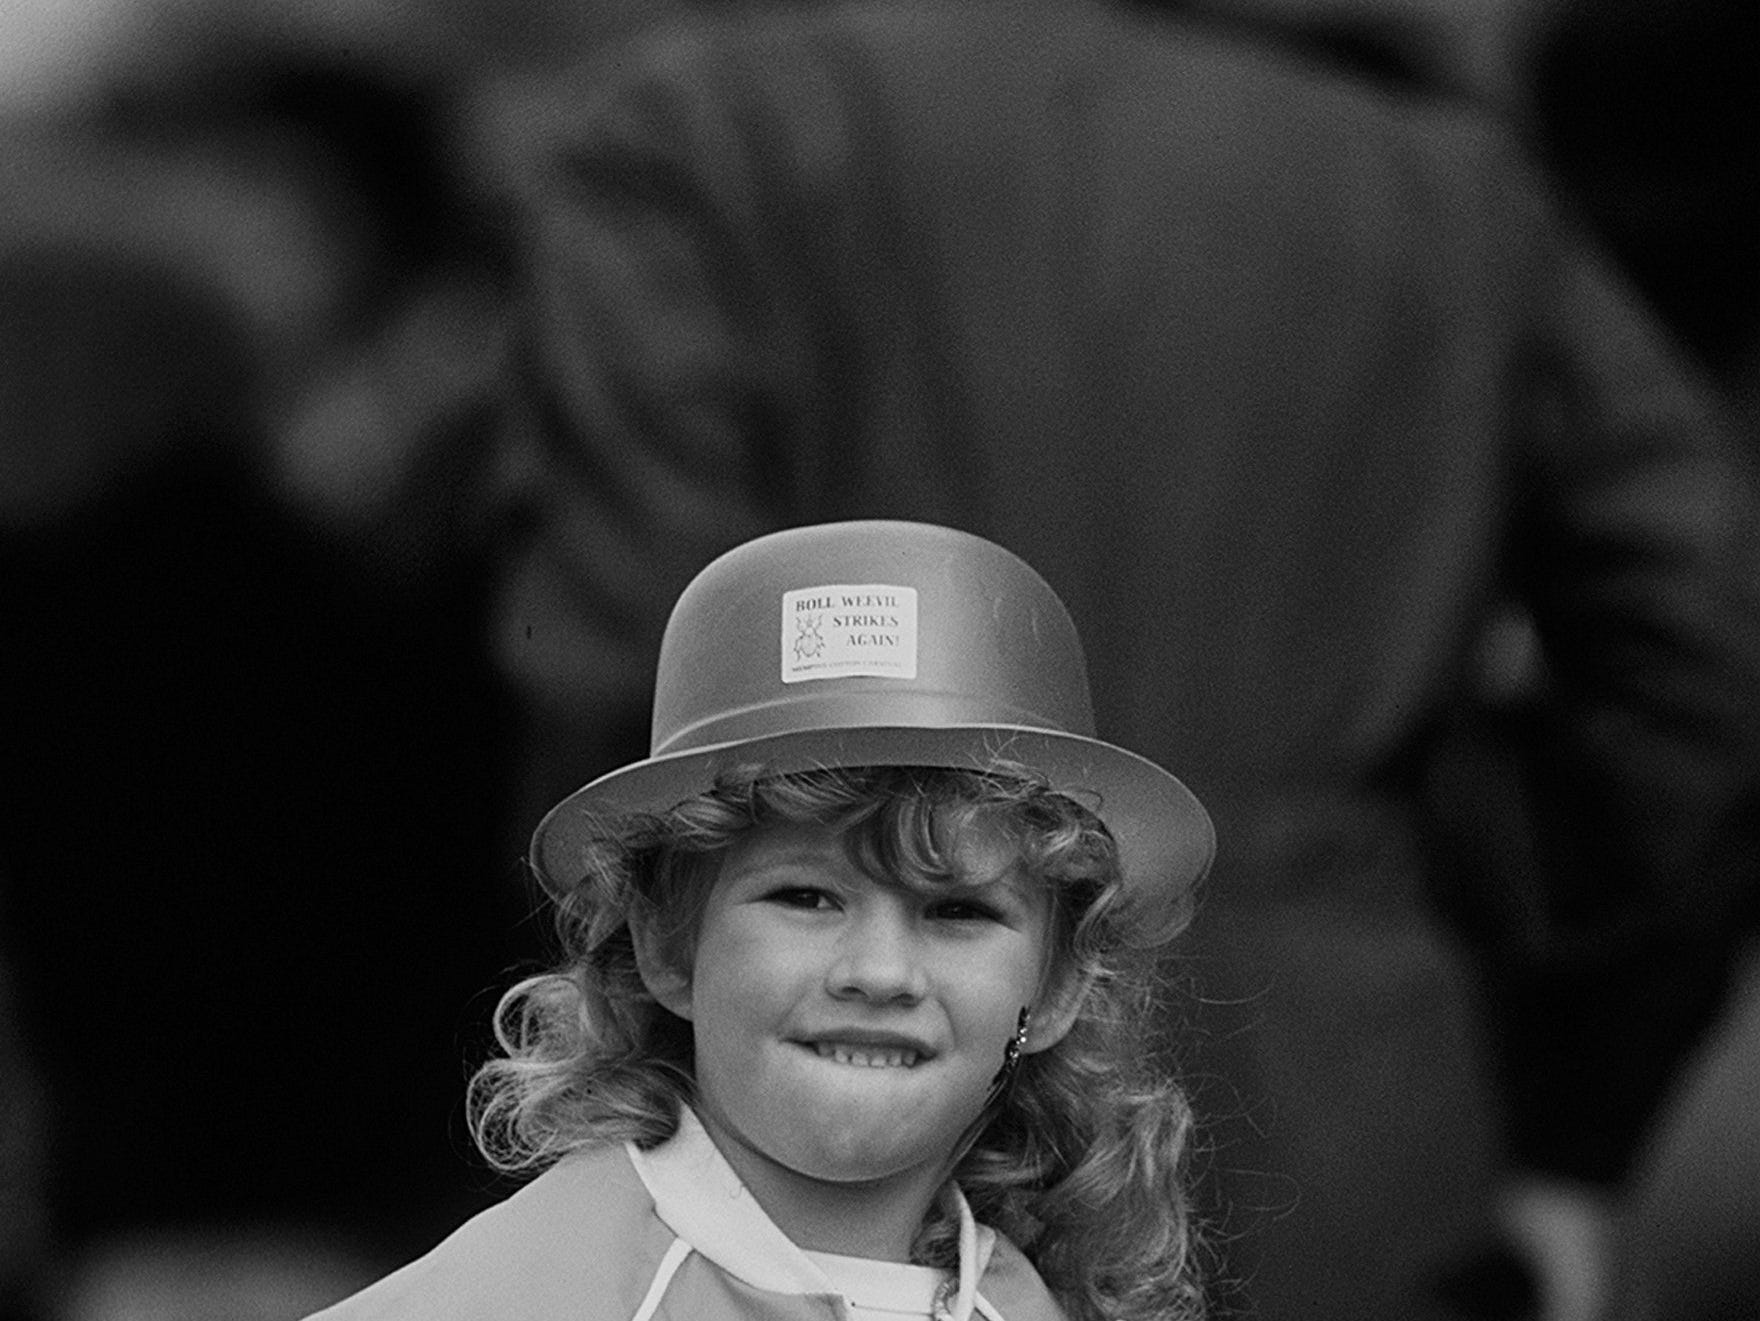 Hillary Hyden, 5, was all decked out in green as she watched St. Patrick's Day festivities on 16 Mar 1985. Police estimated the crowd watching the events on Madison Avenue at between 35,000 and 40,000.